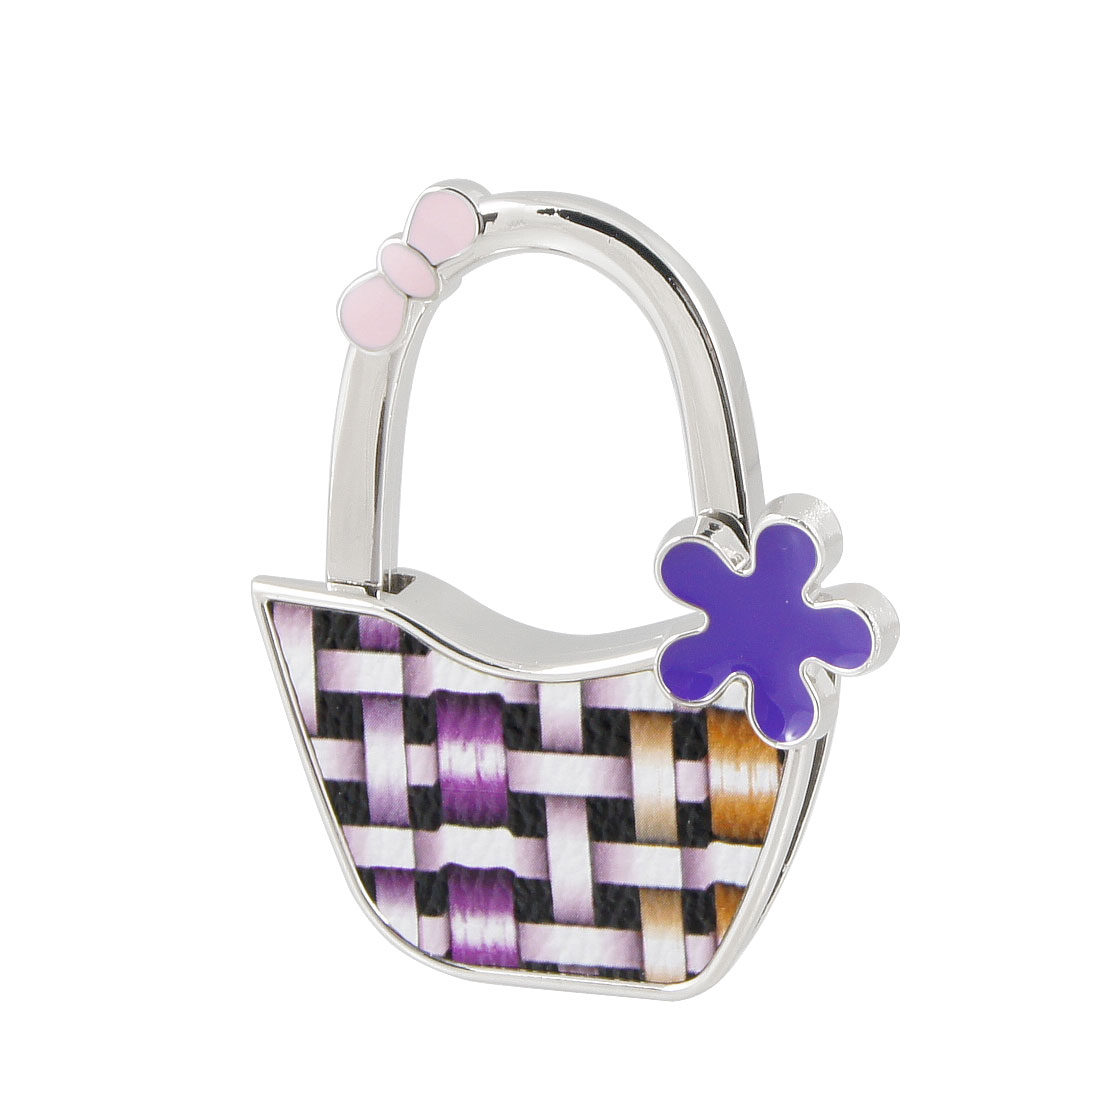 Purple Faux Leather Metal Check Pattern Bag Shaped Foldaing Handbag Hook Hanger